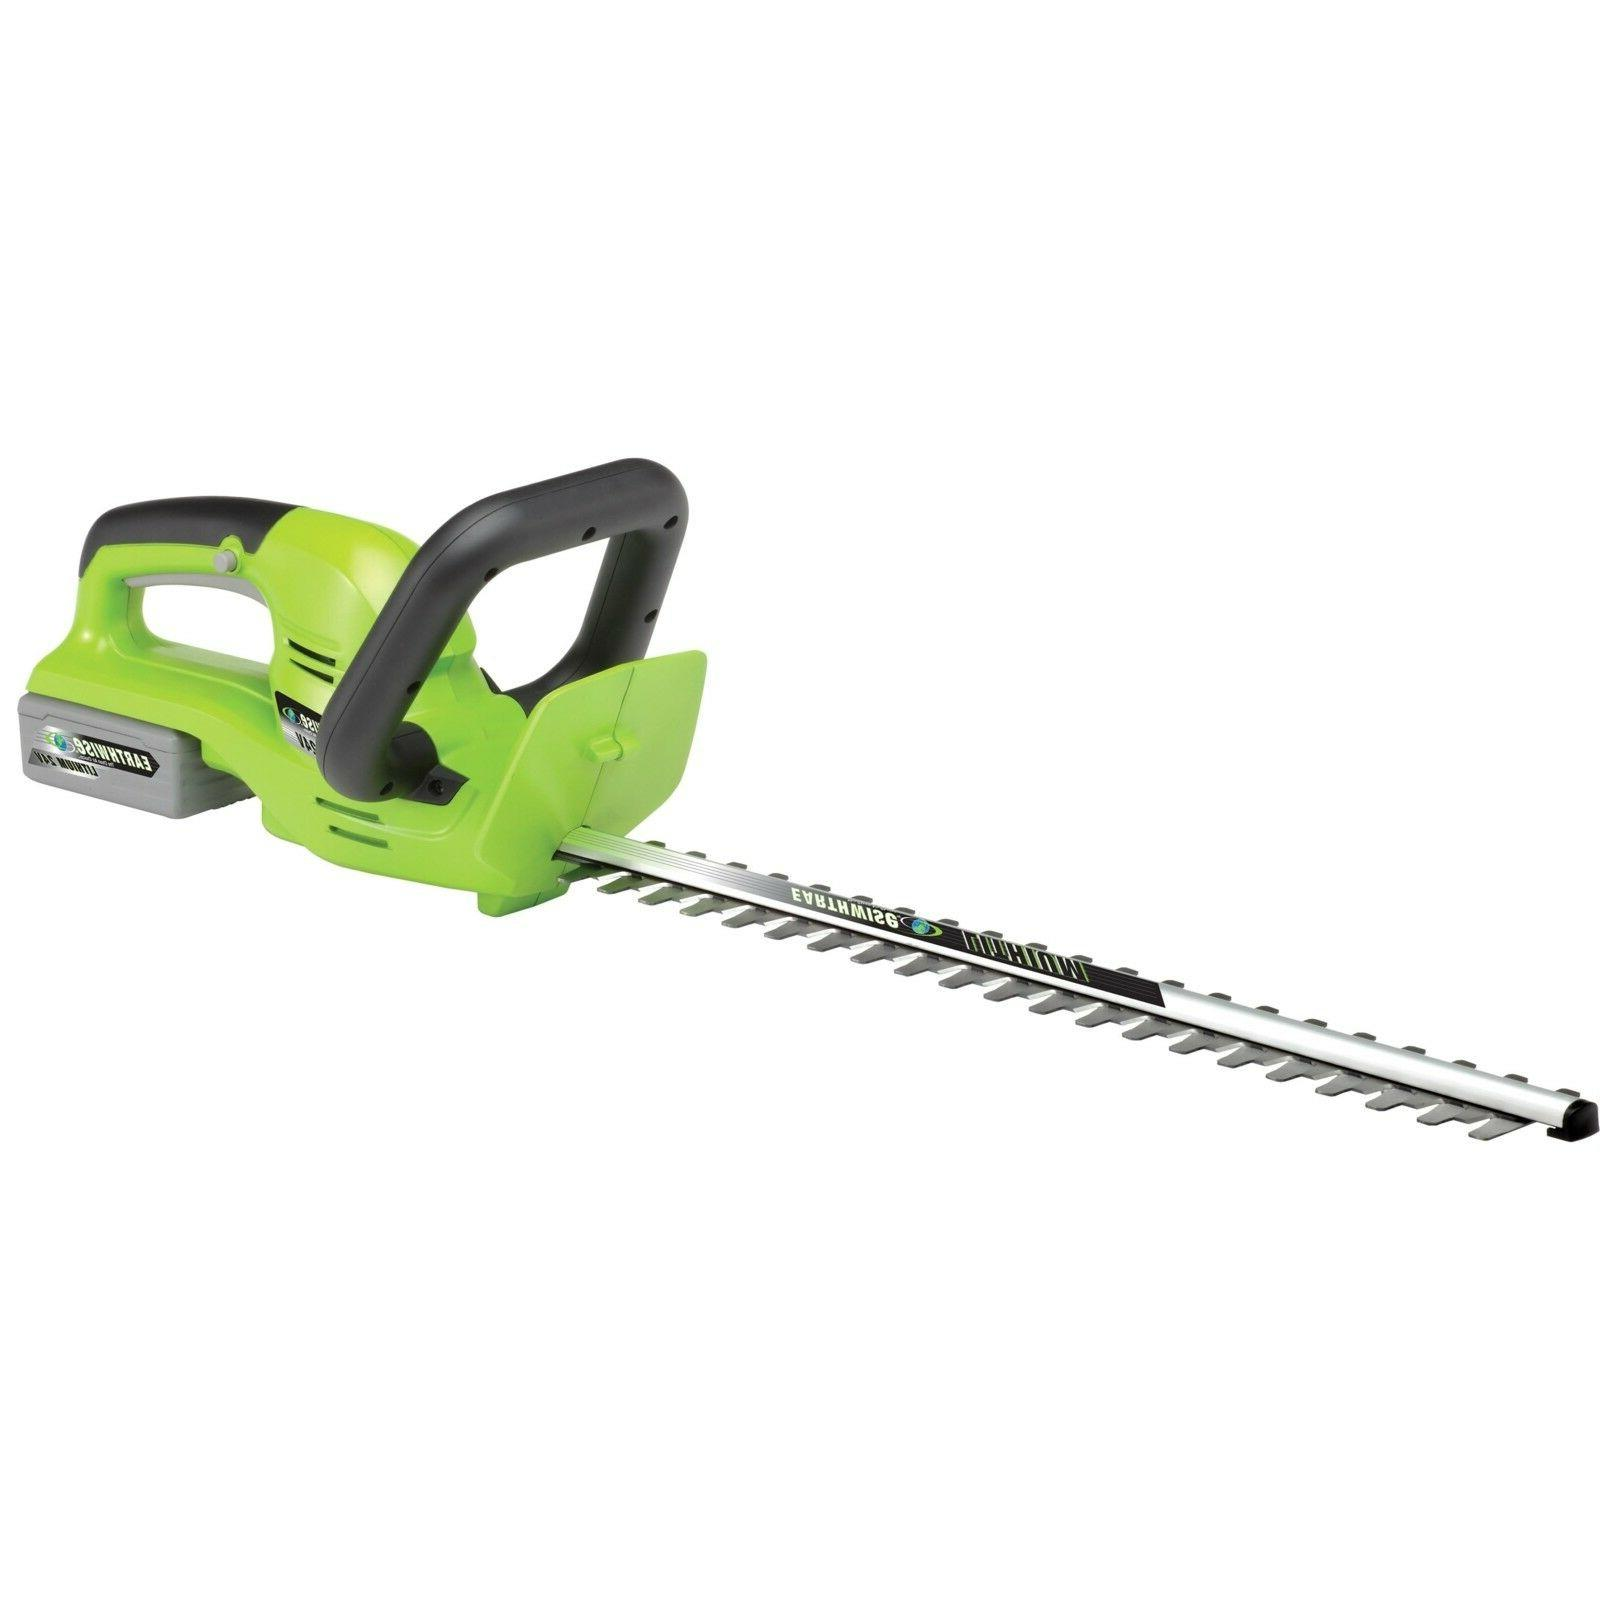 hedge trimmer cordless lawn grass cutter dual